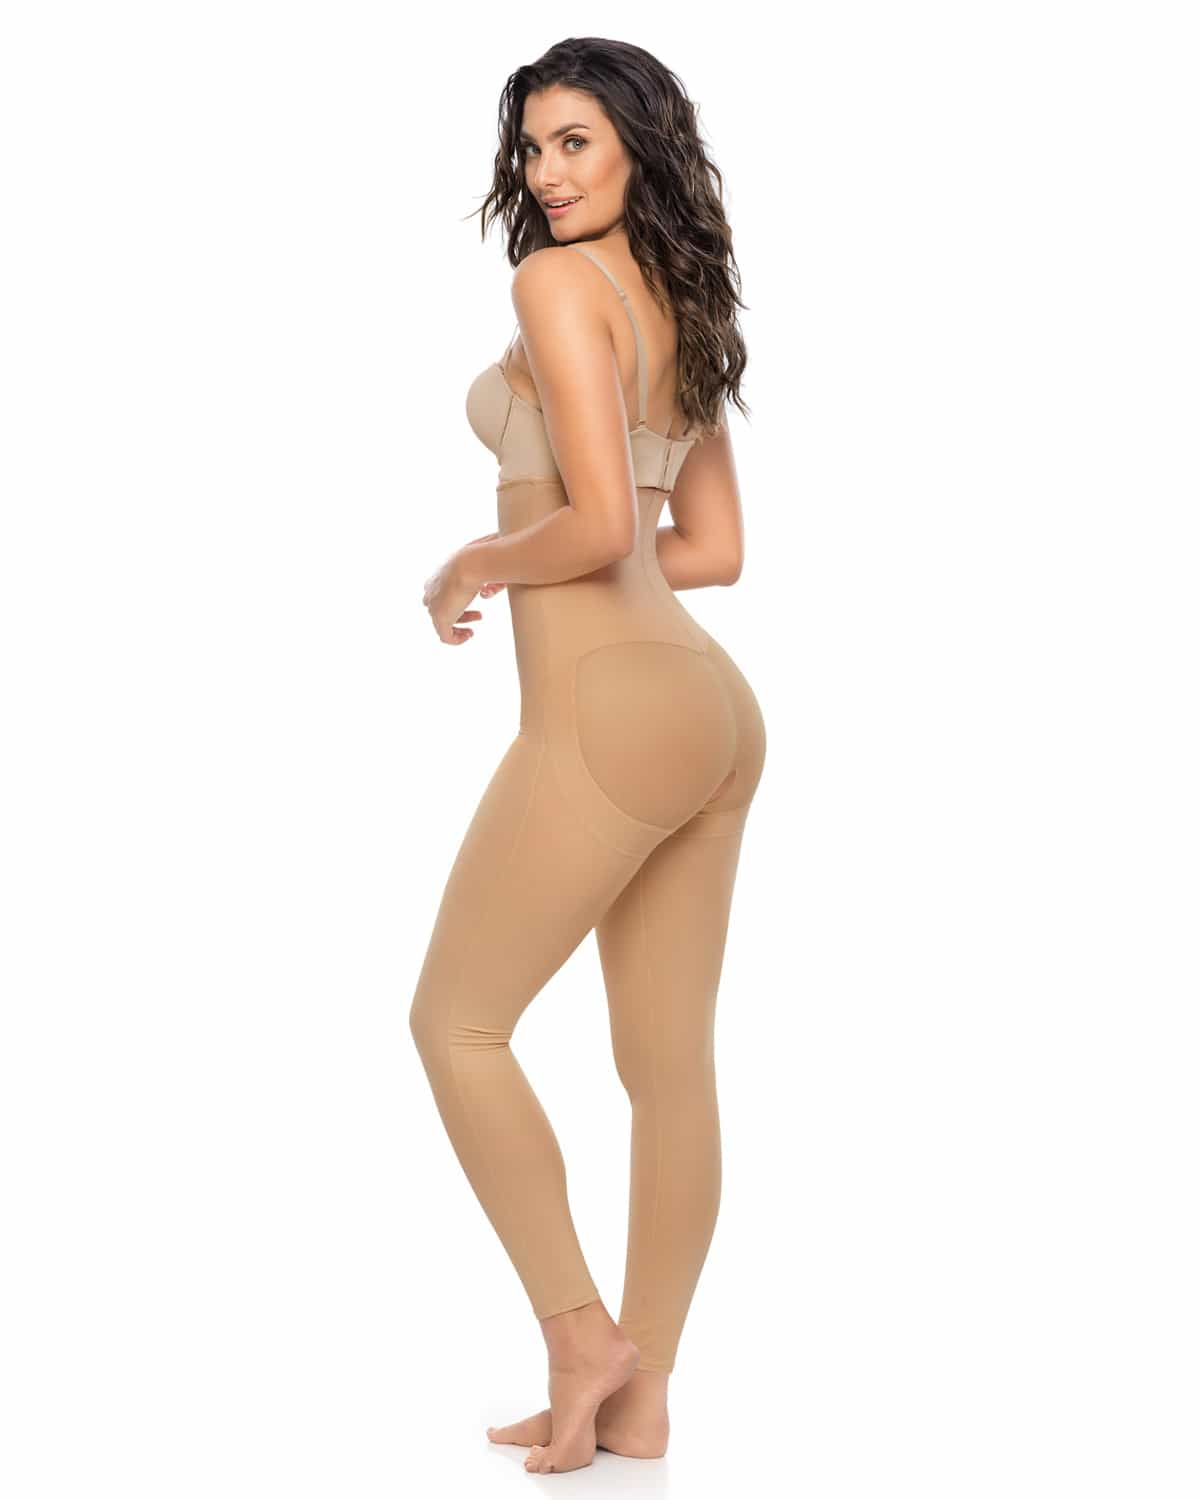 b1301a19c37fe Brazilian Butt Lift Compression Garment for Butt Lift Augmentation Surgery